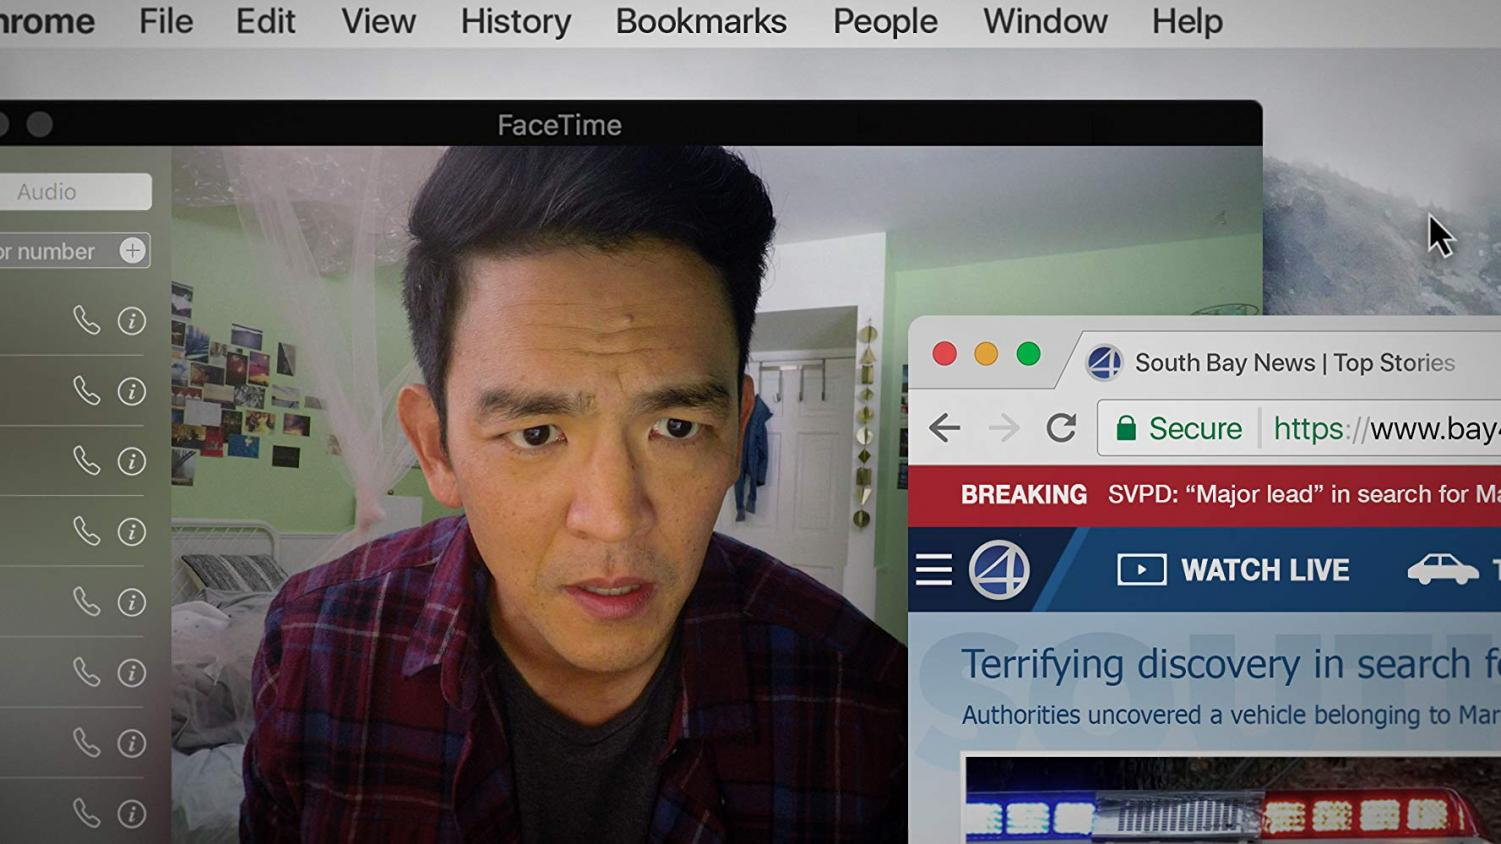 John Cho plays a father looking for his missing 16-year-old daughter in